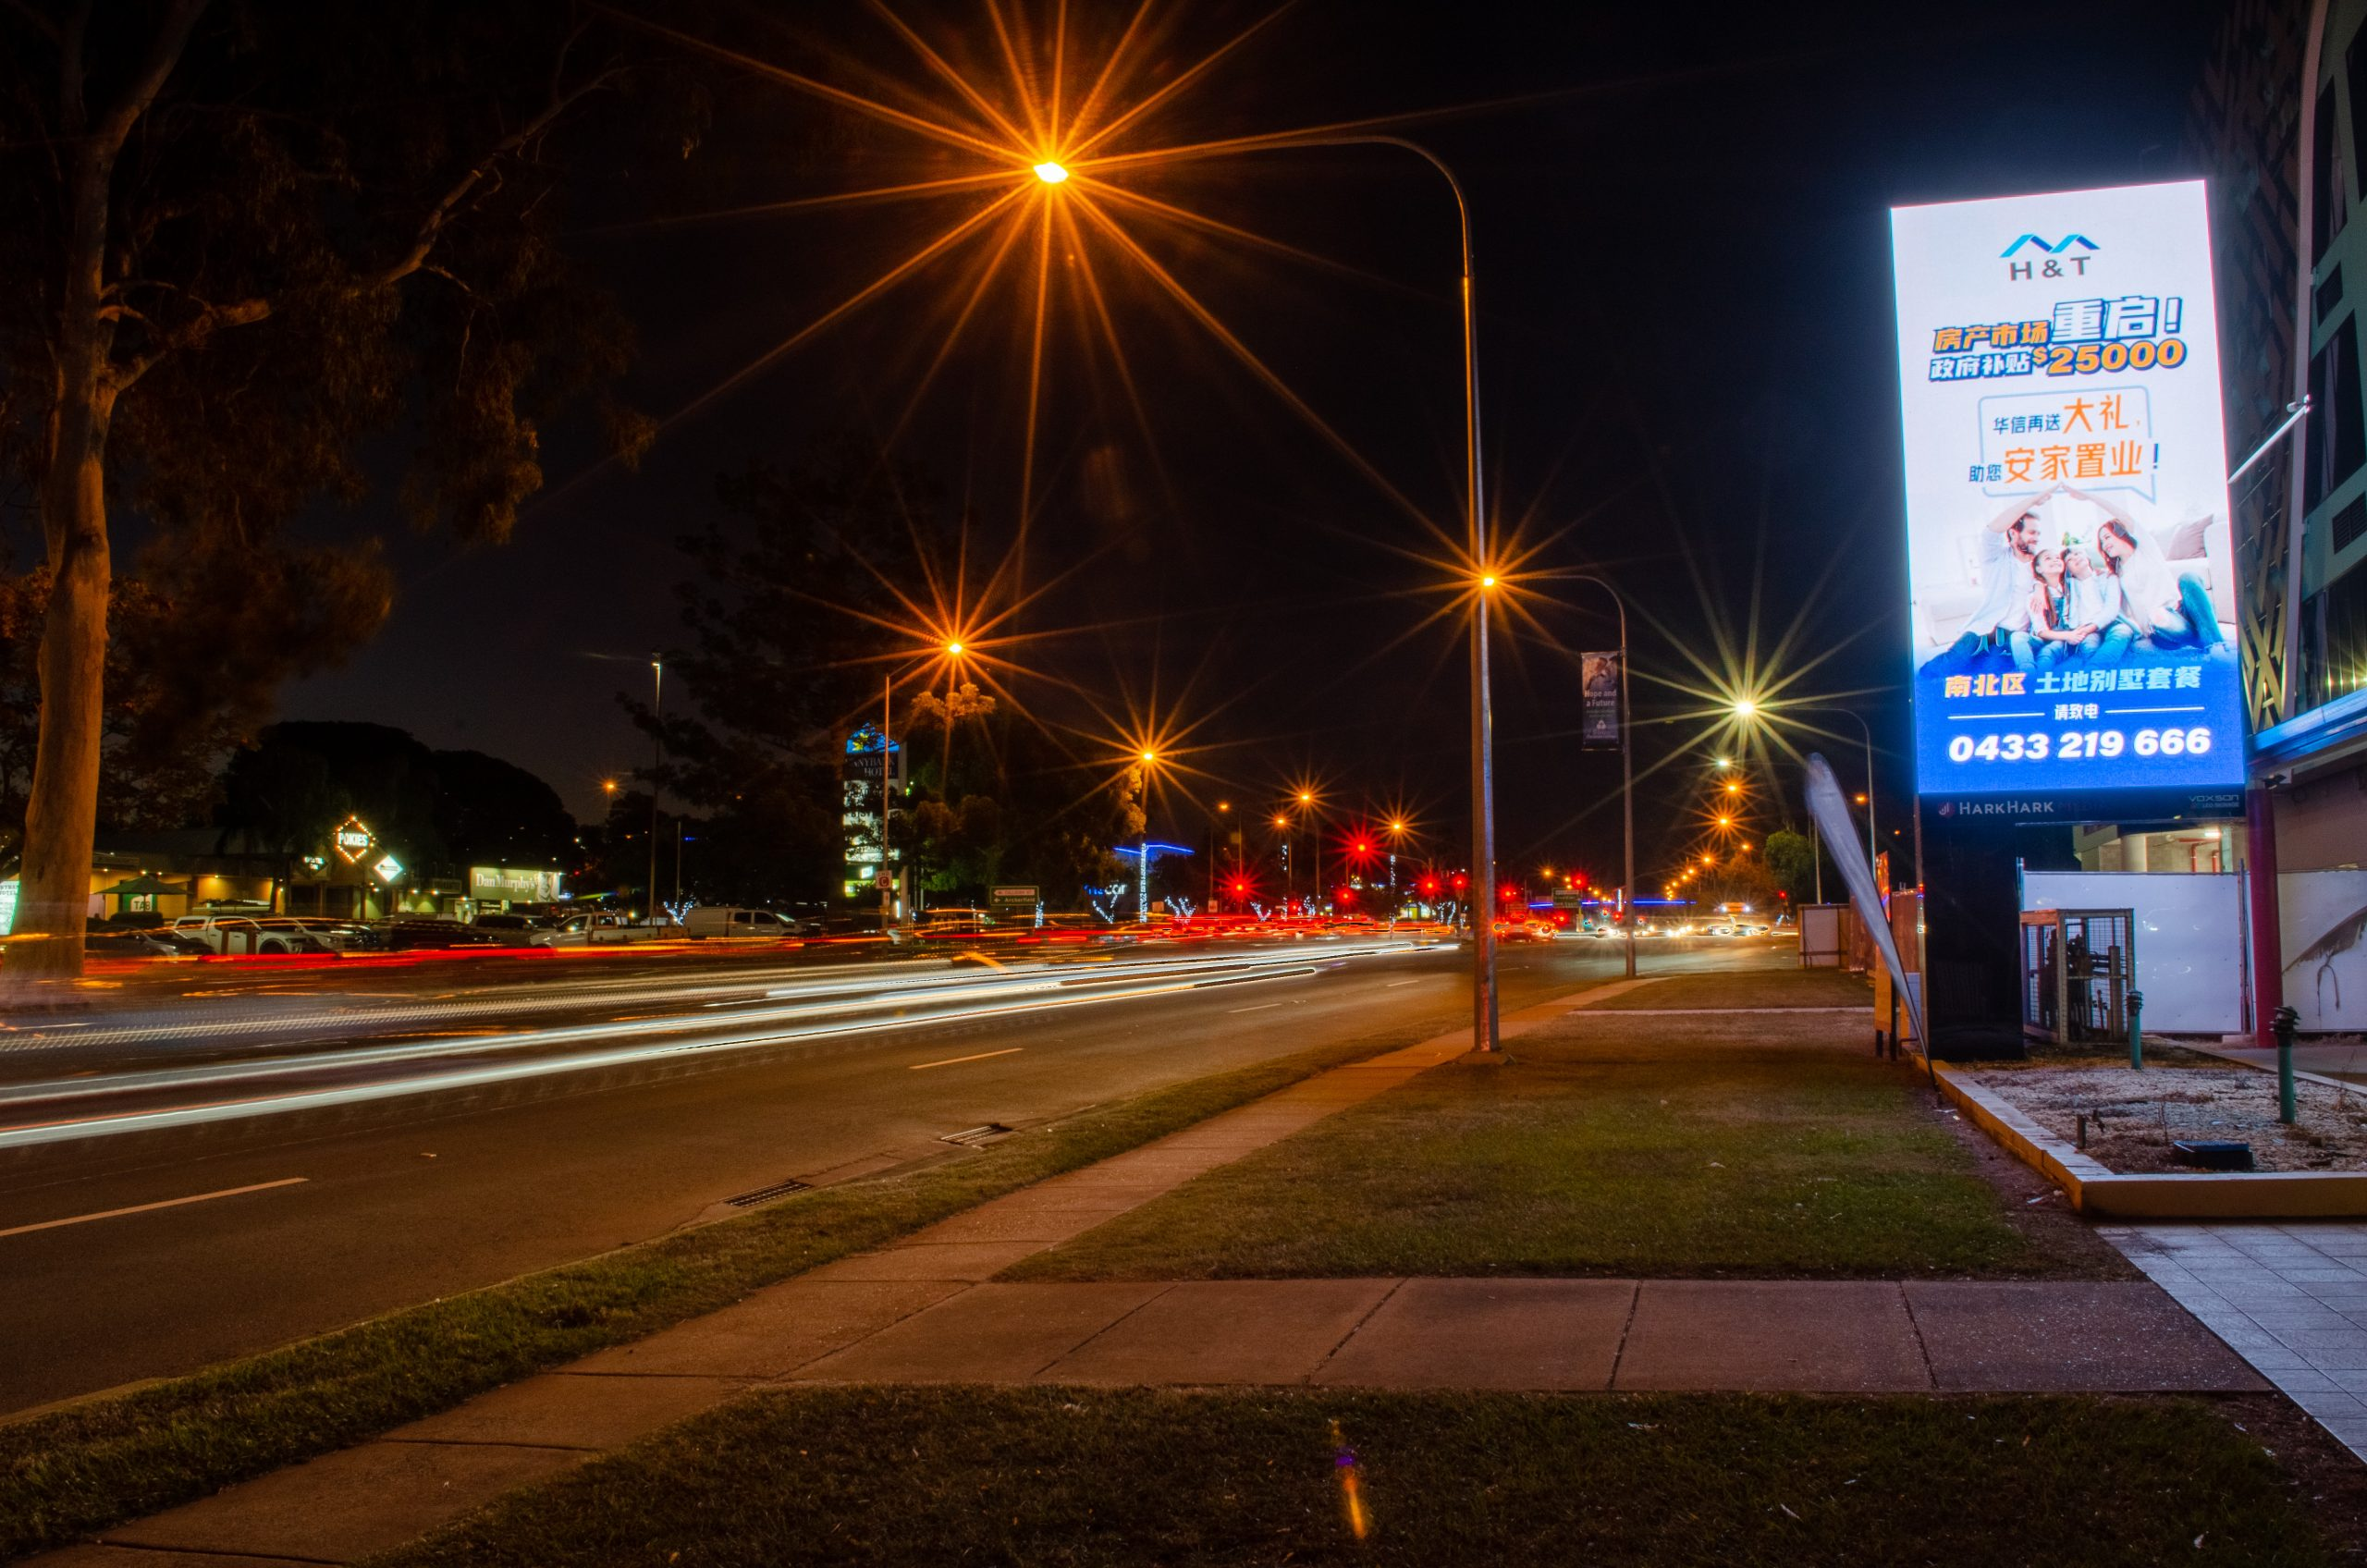 Outdoor LED Signs - Voxson 317 Mains Rd Sunnybank B